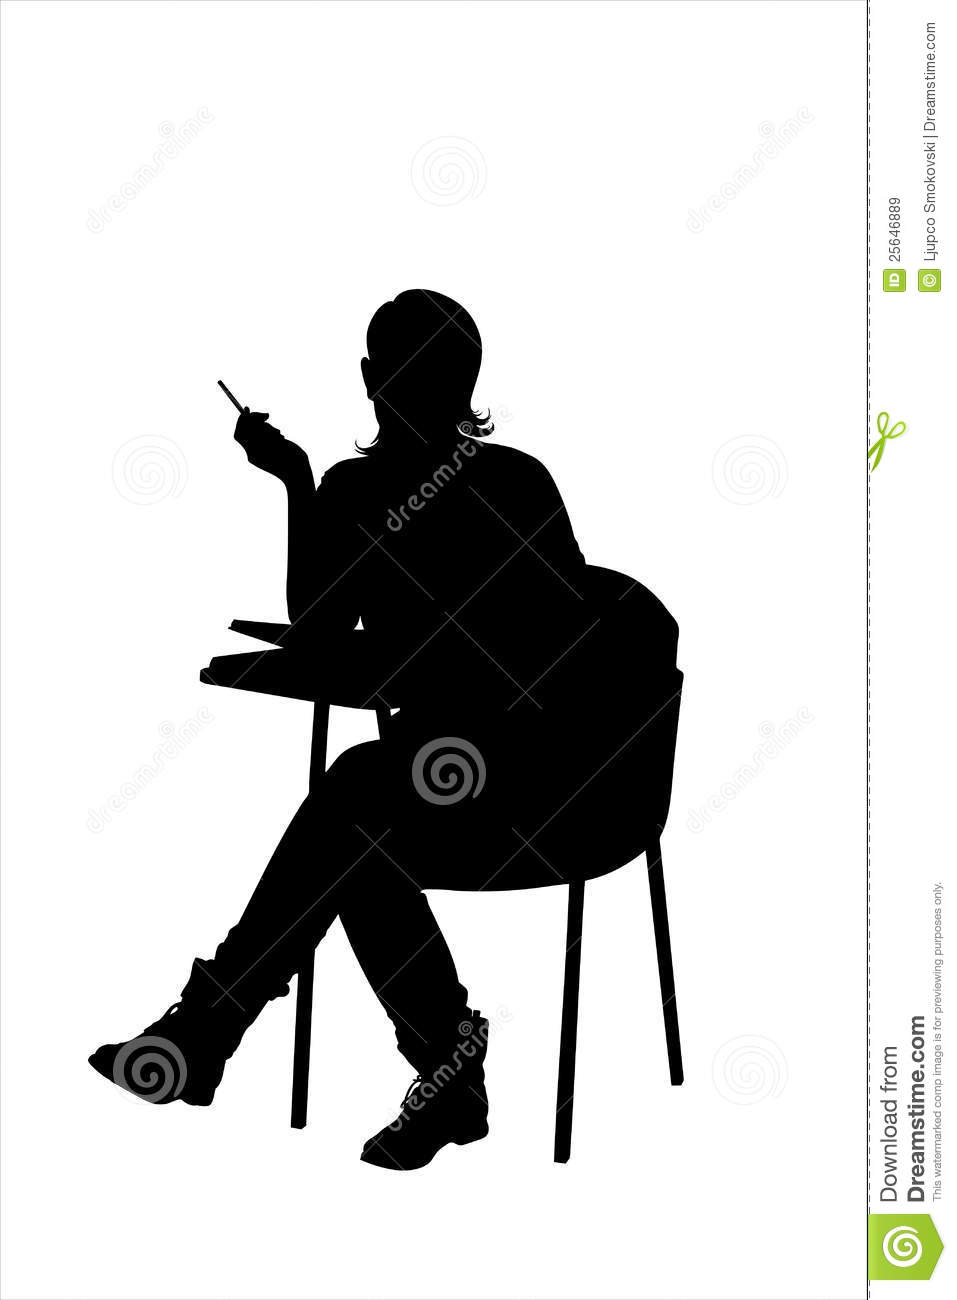 ... Free Stock Images: A silhouette of a female sitting on a school chair